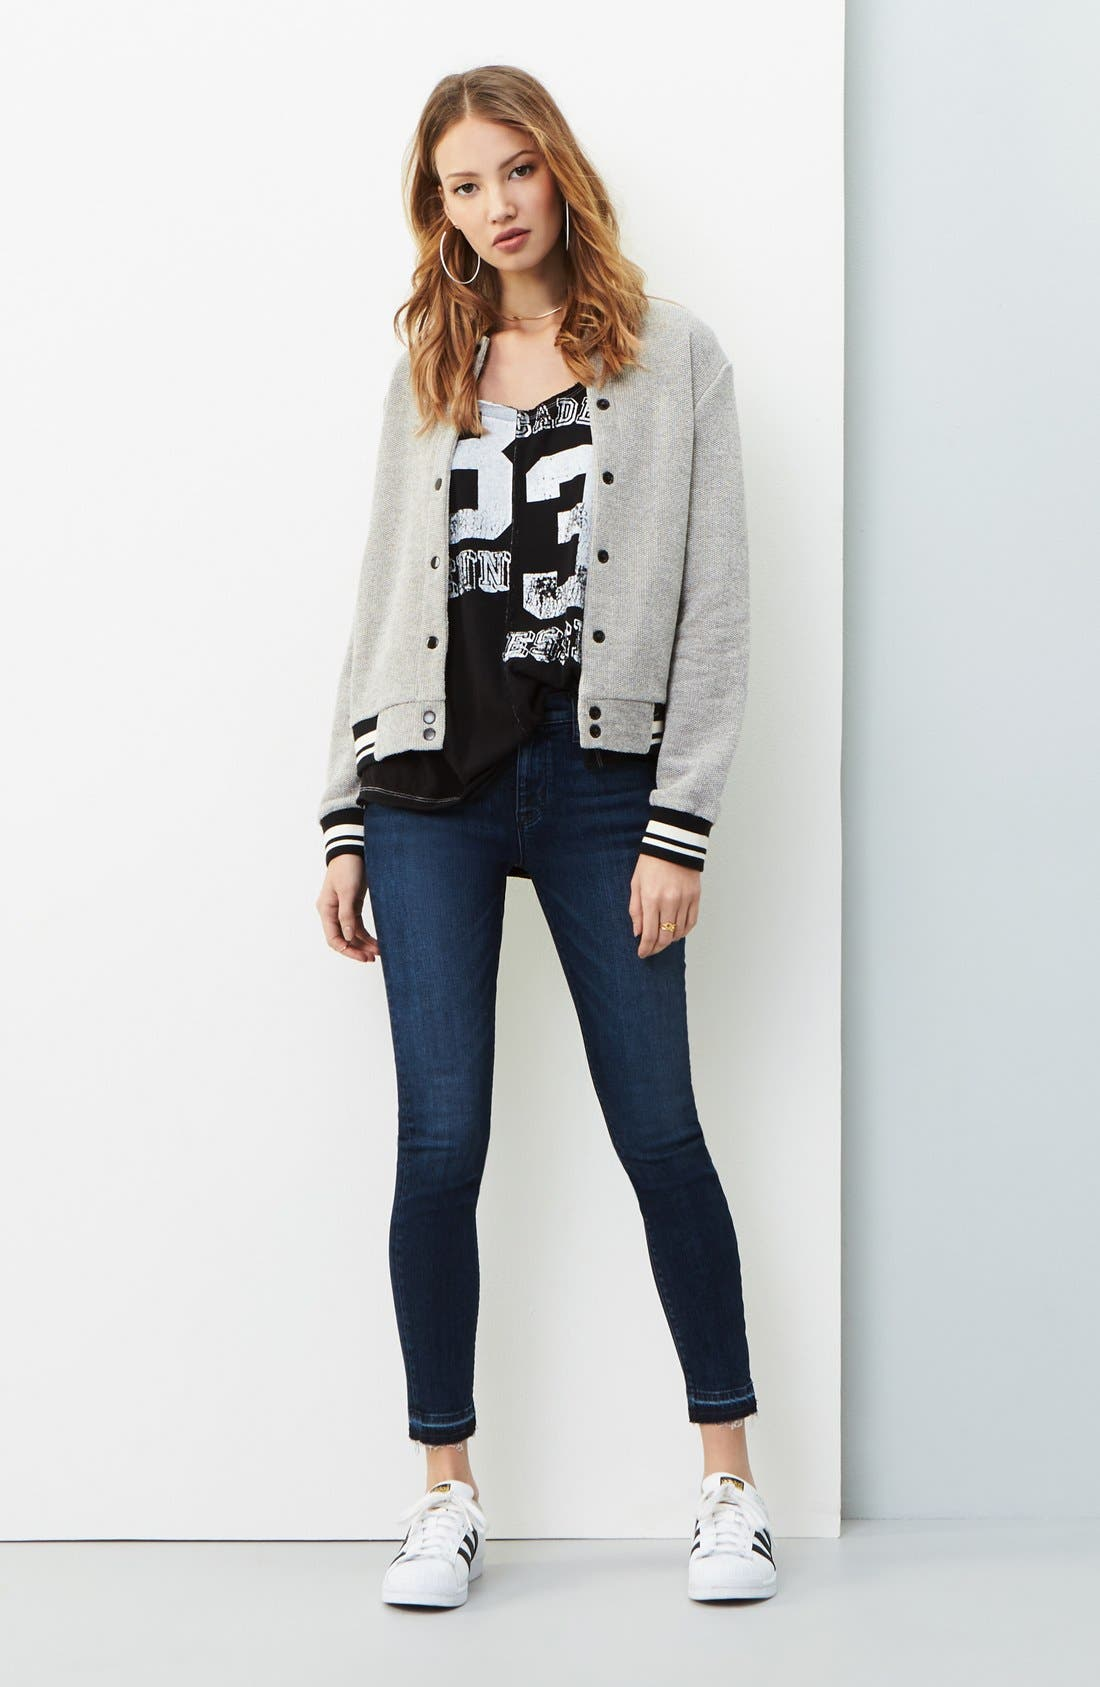 cupcakes and cashmere Jacket, Free People Tee & Hudson Jeans Skinny Jeans Outfit with Accessories